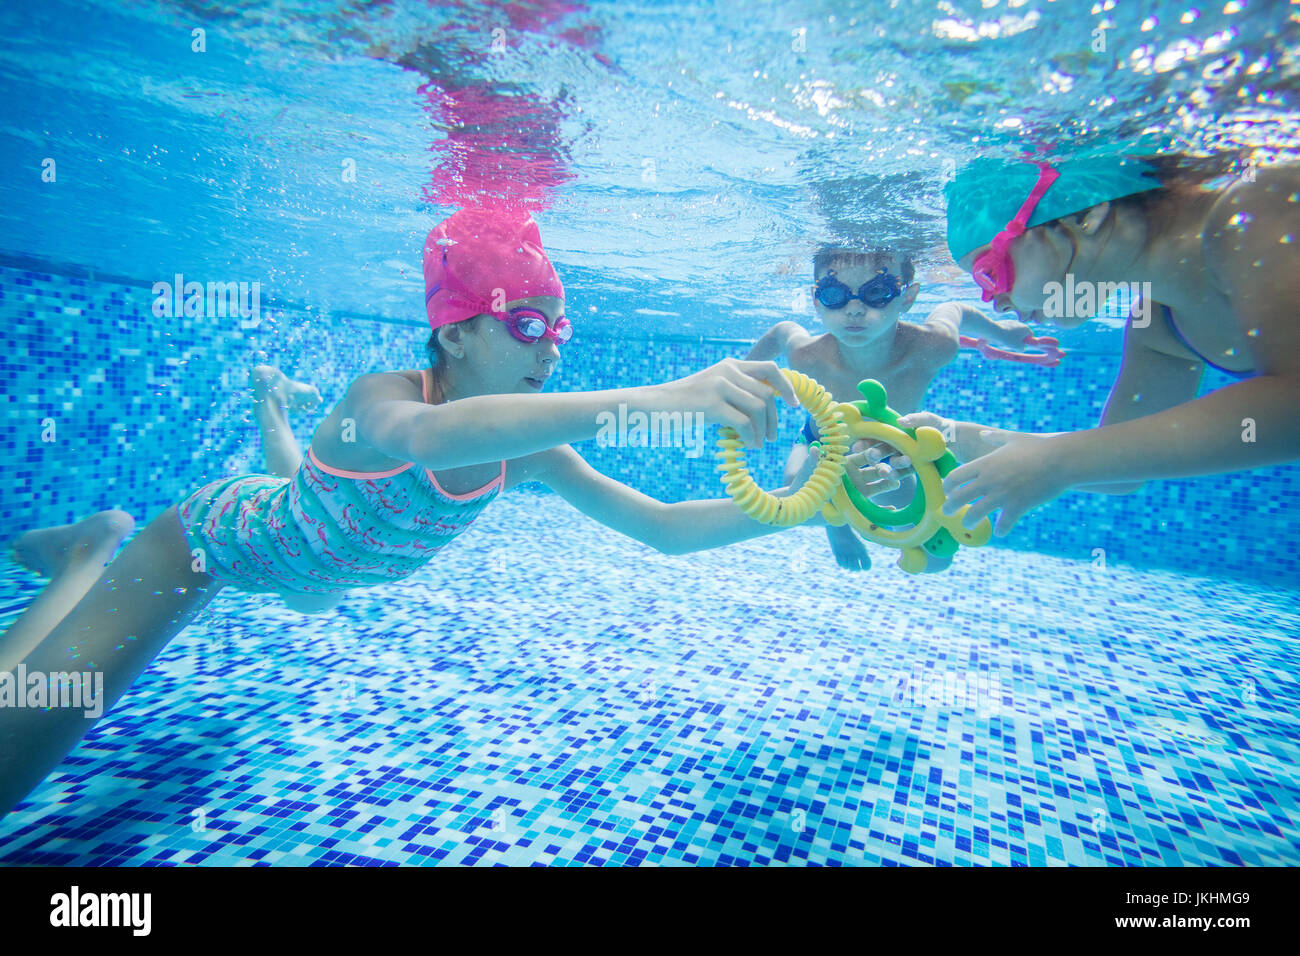 Kids swimming underwater and playing with toys in swimming pool Stock Photo